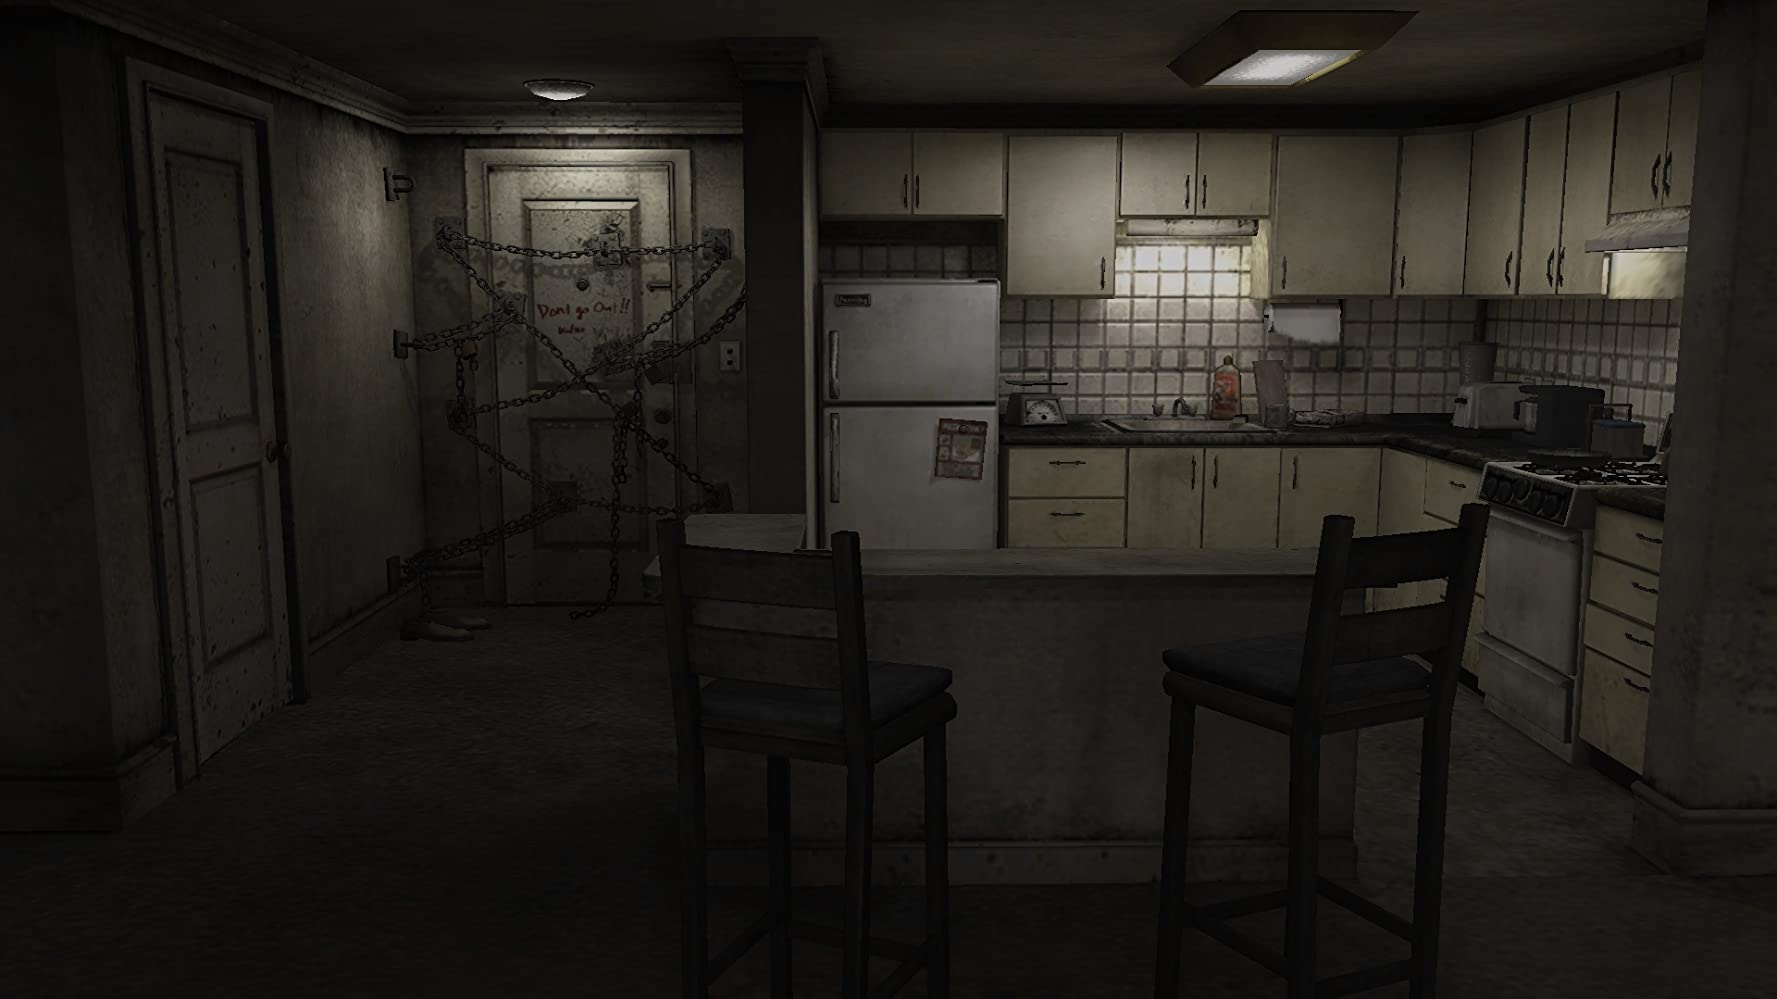 Silent Hill 4 might be Konami's next PC rerelease